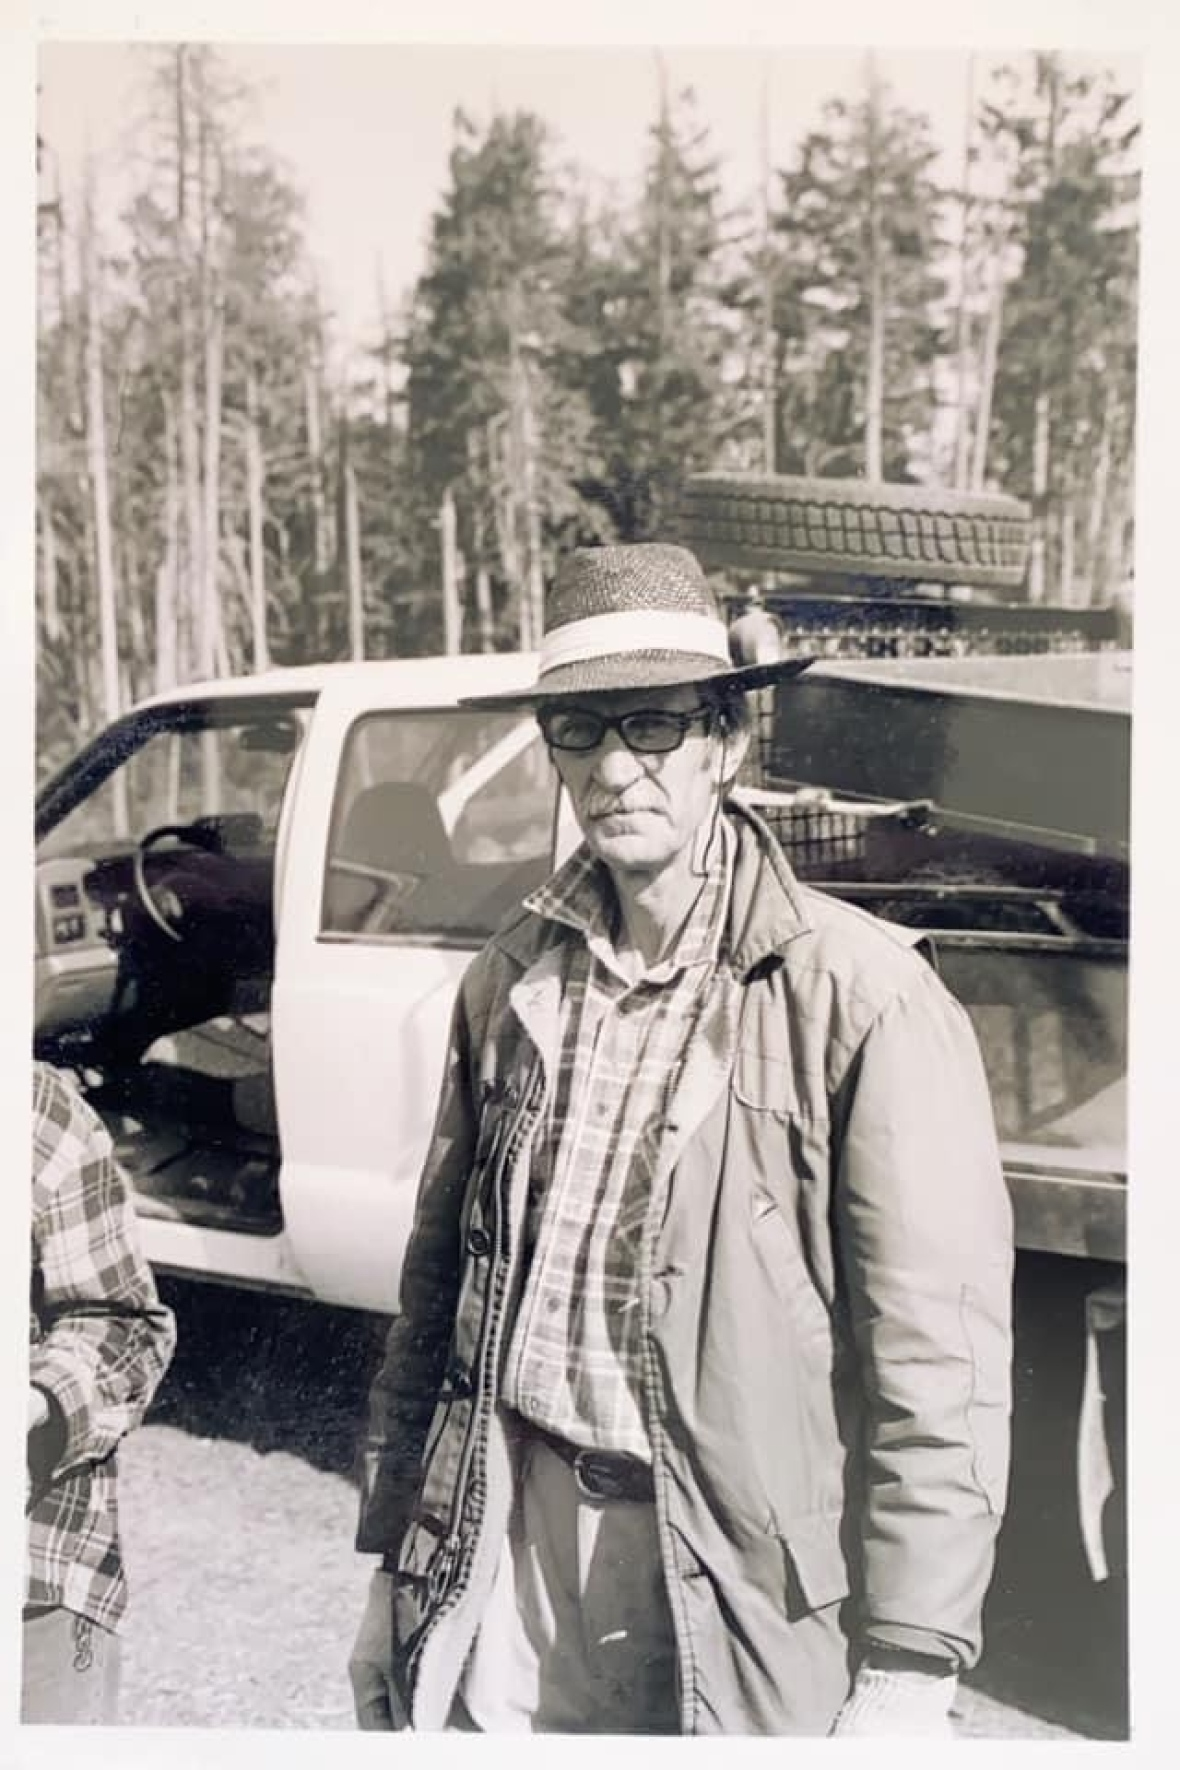 Jerry Krouzel in an undated photo. The long-time treeplanter was working on a job just two weeks before family say COVID-19 felled the tall, formidable forester.